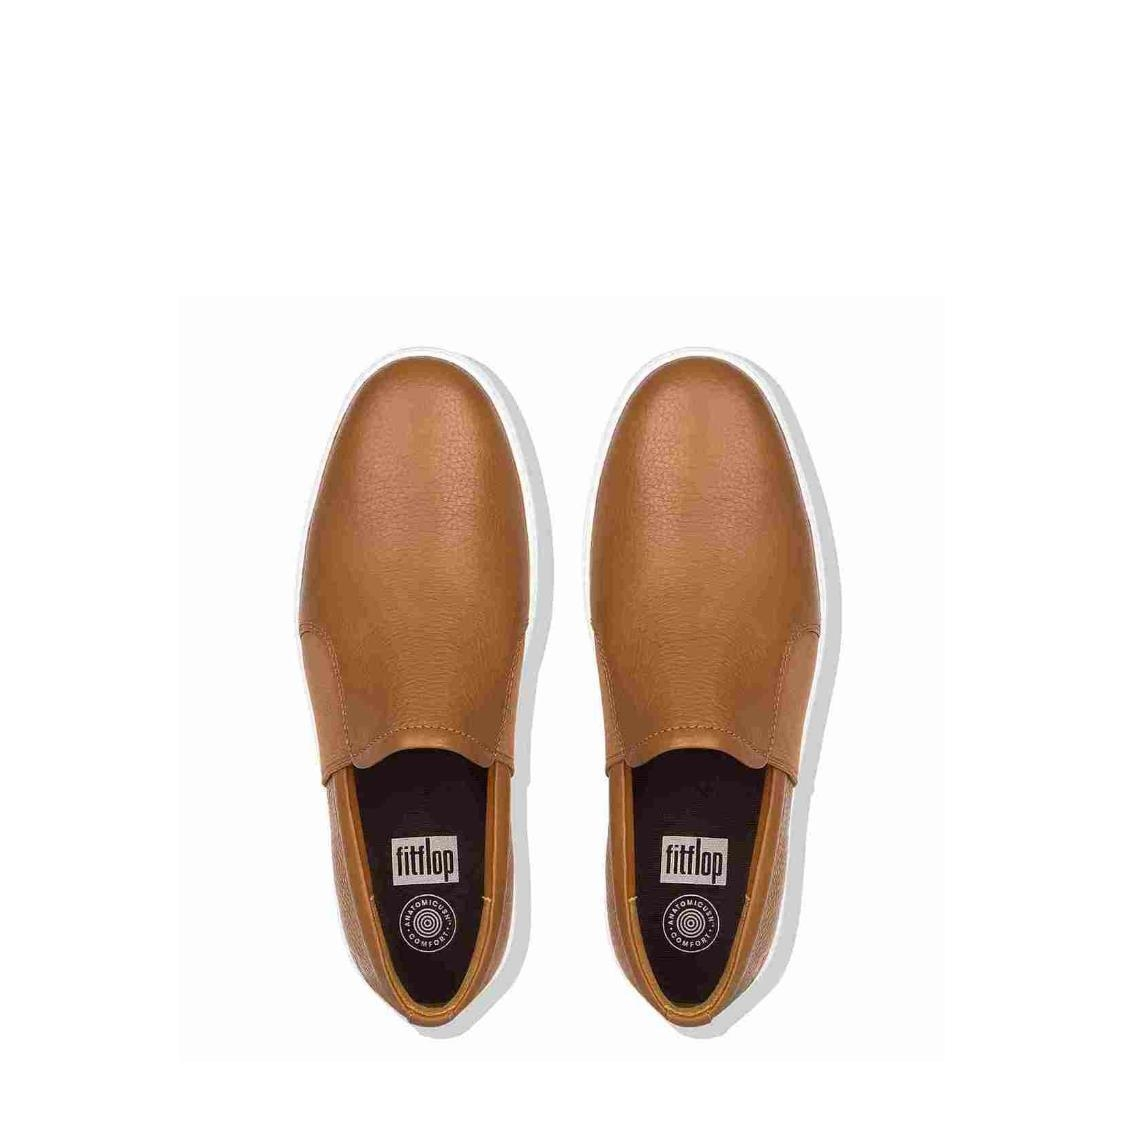 2e4c05c320a Collins™ Leather Slip-On Skate Shoes Light Tan Metro Department Store